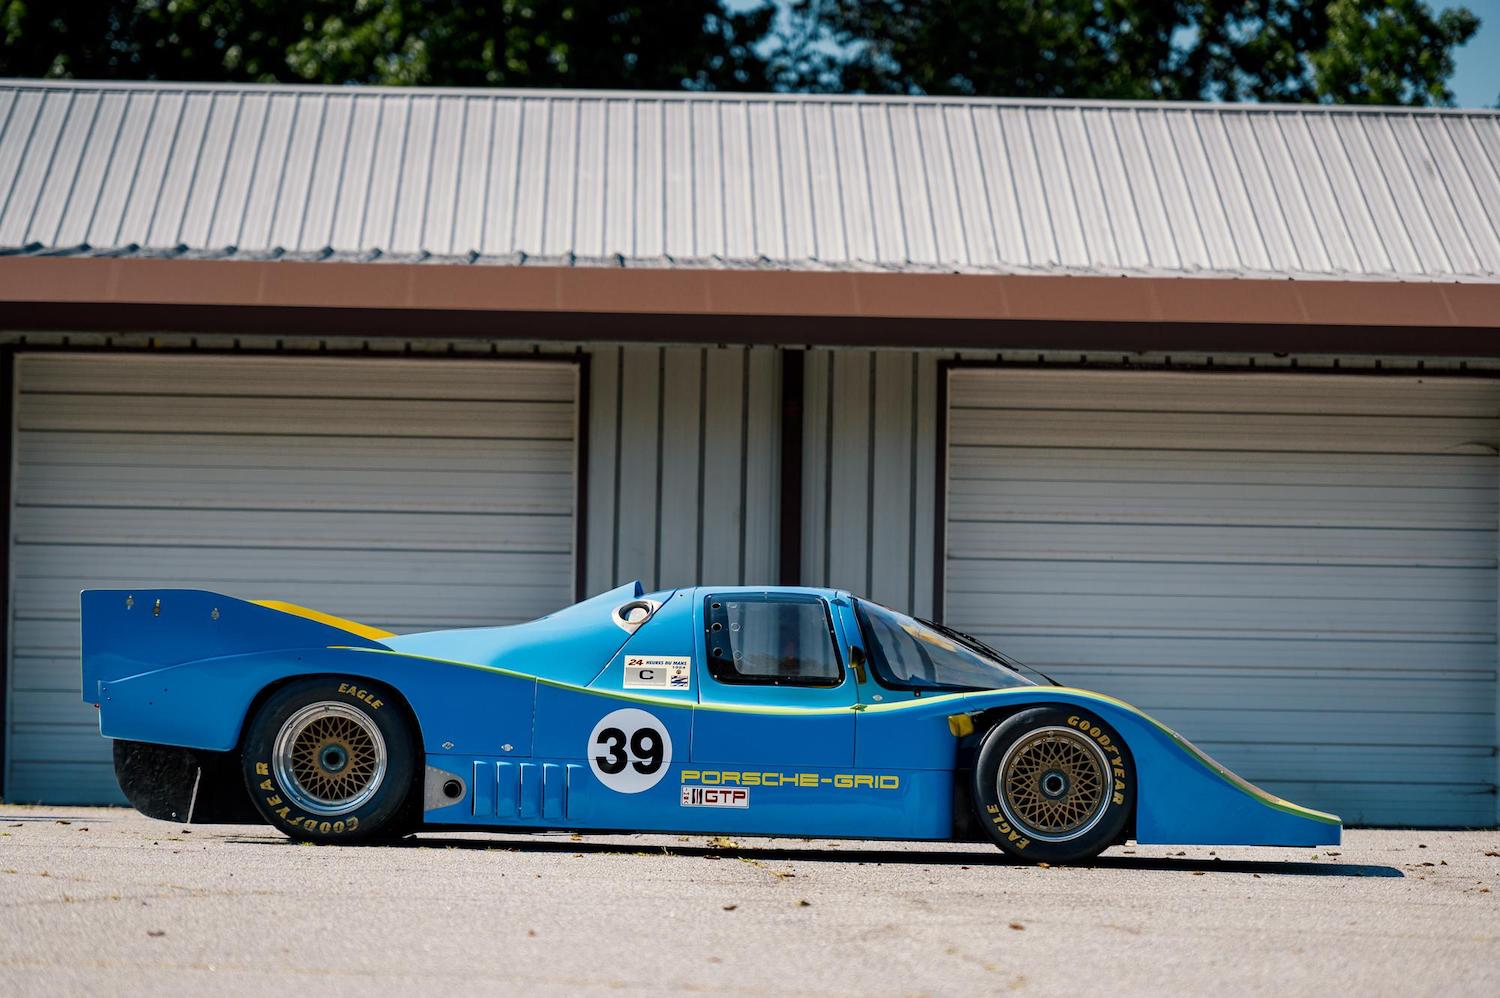 1983 Grid S2 Group C Prototype side-view